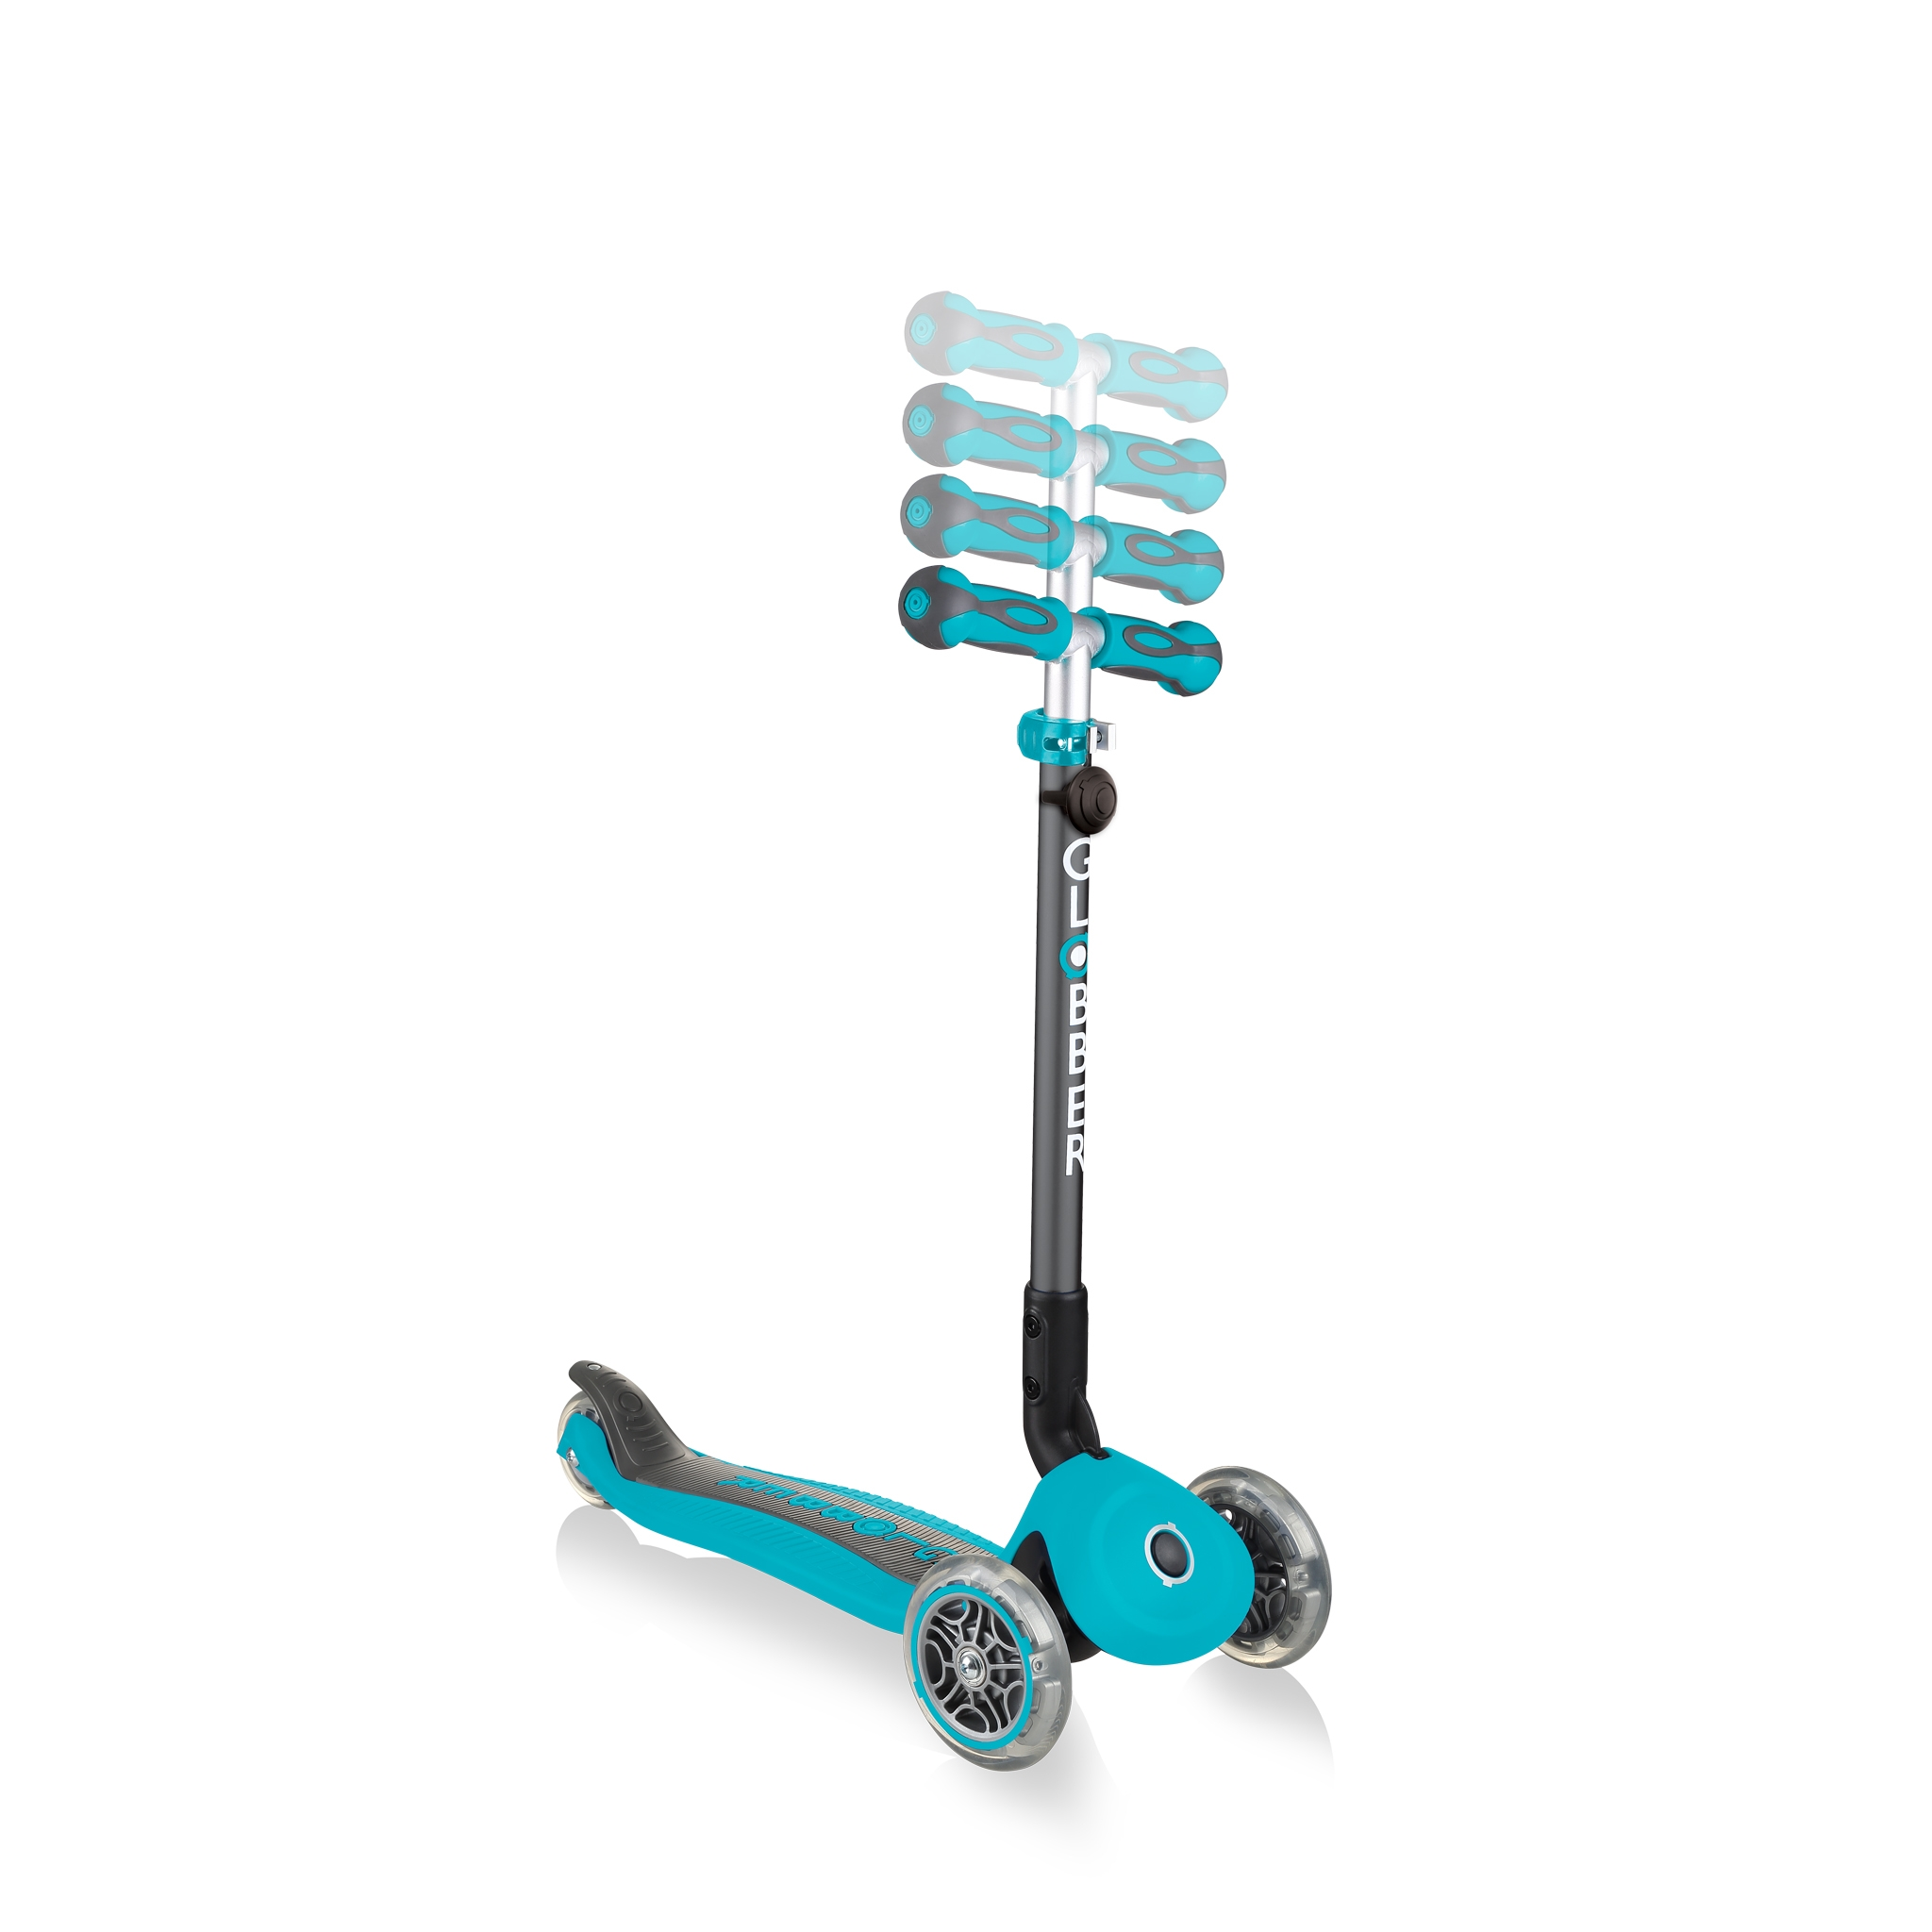 GO-UP-DELUXE-PLAY-ride-on-walking-bike-scooter-with-4-height-adjustable-T-bar-and-light-and-sound-module-teal 4